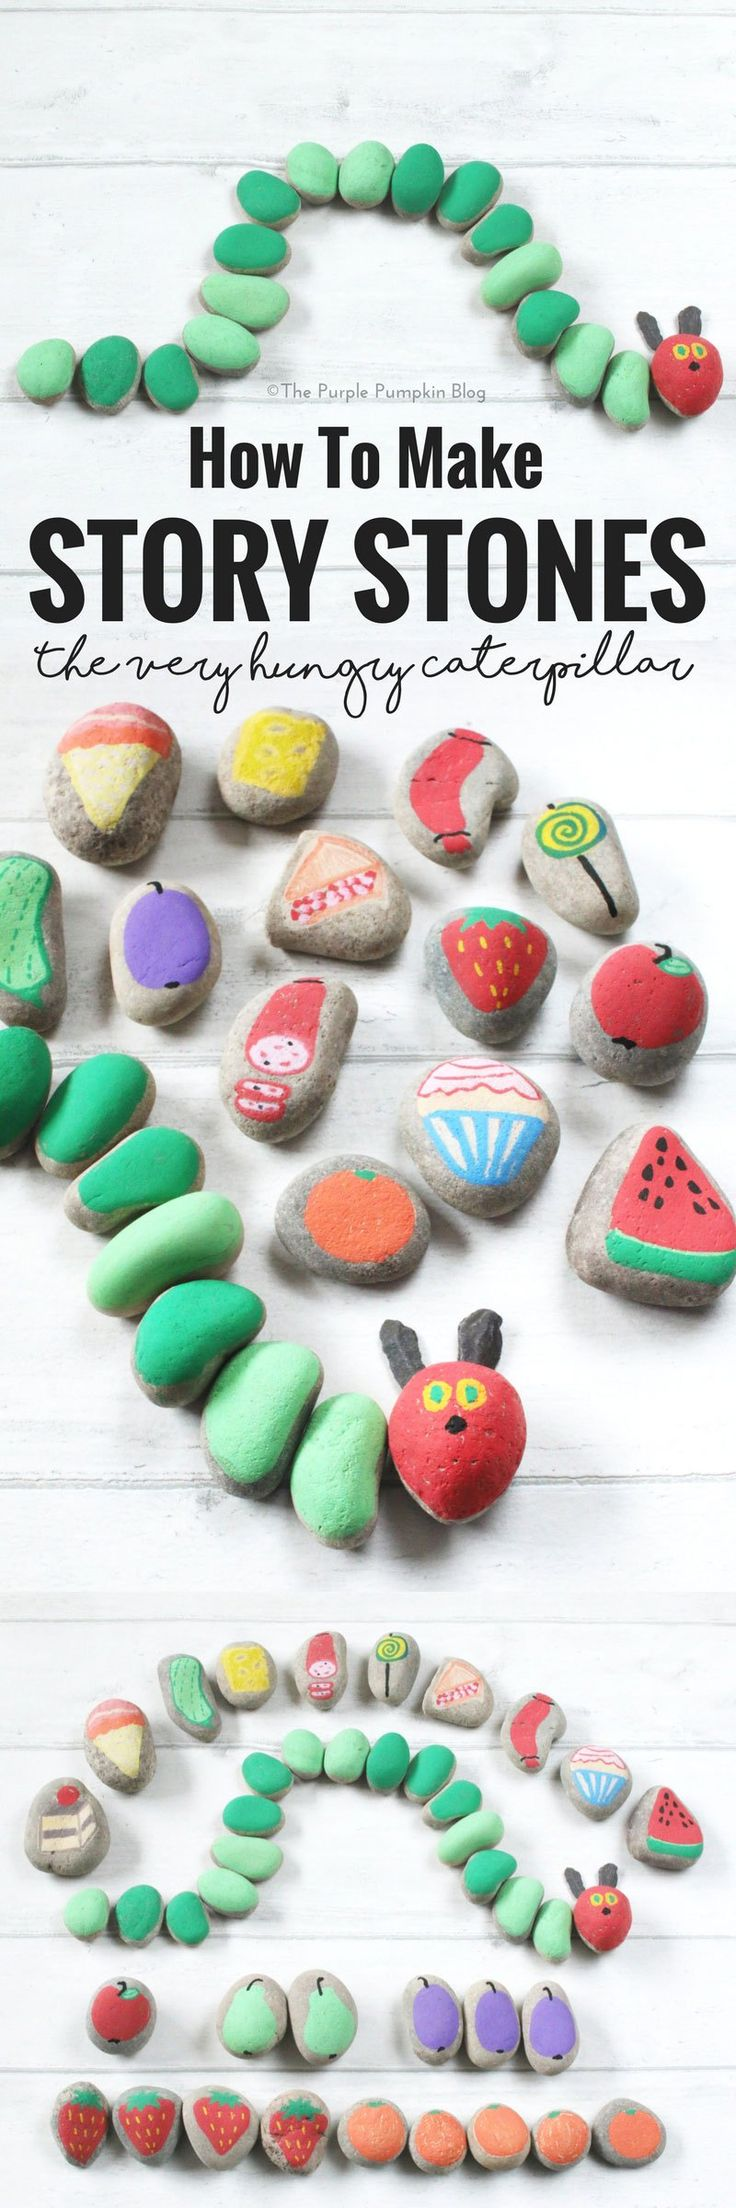 How To Make Story Stones! This is a fun way to tell and make up stories with children. Paint objects and characters onto stones and use them to tell a favourite story - like the beloved Very Hungry Caterpillar! Or a classic fairy tale like The Three Littl